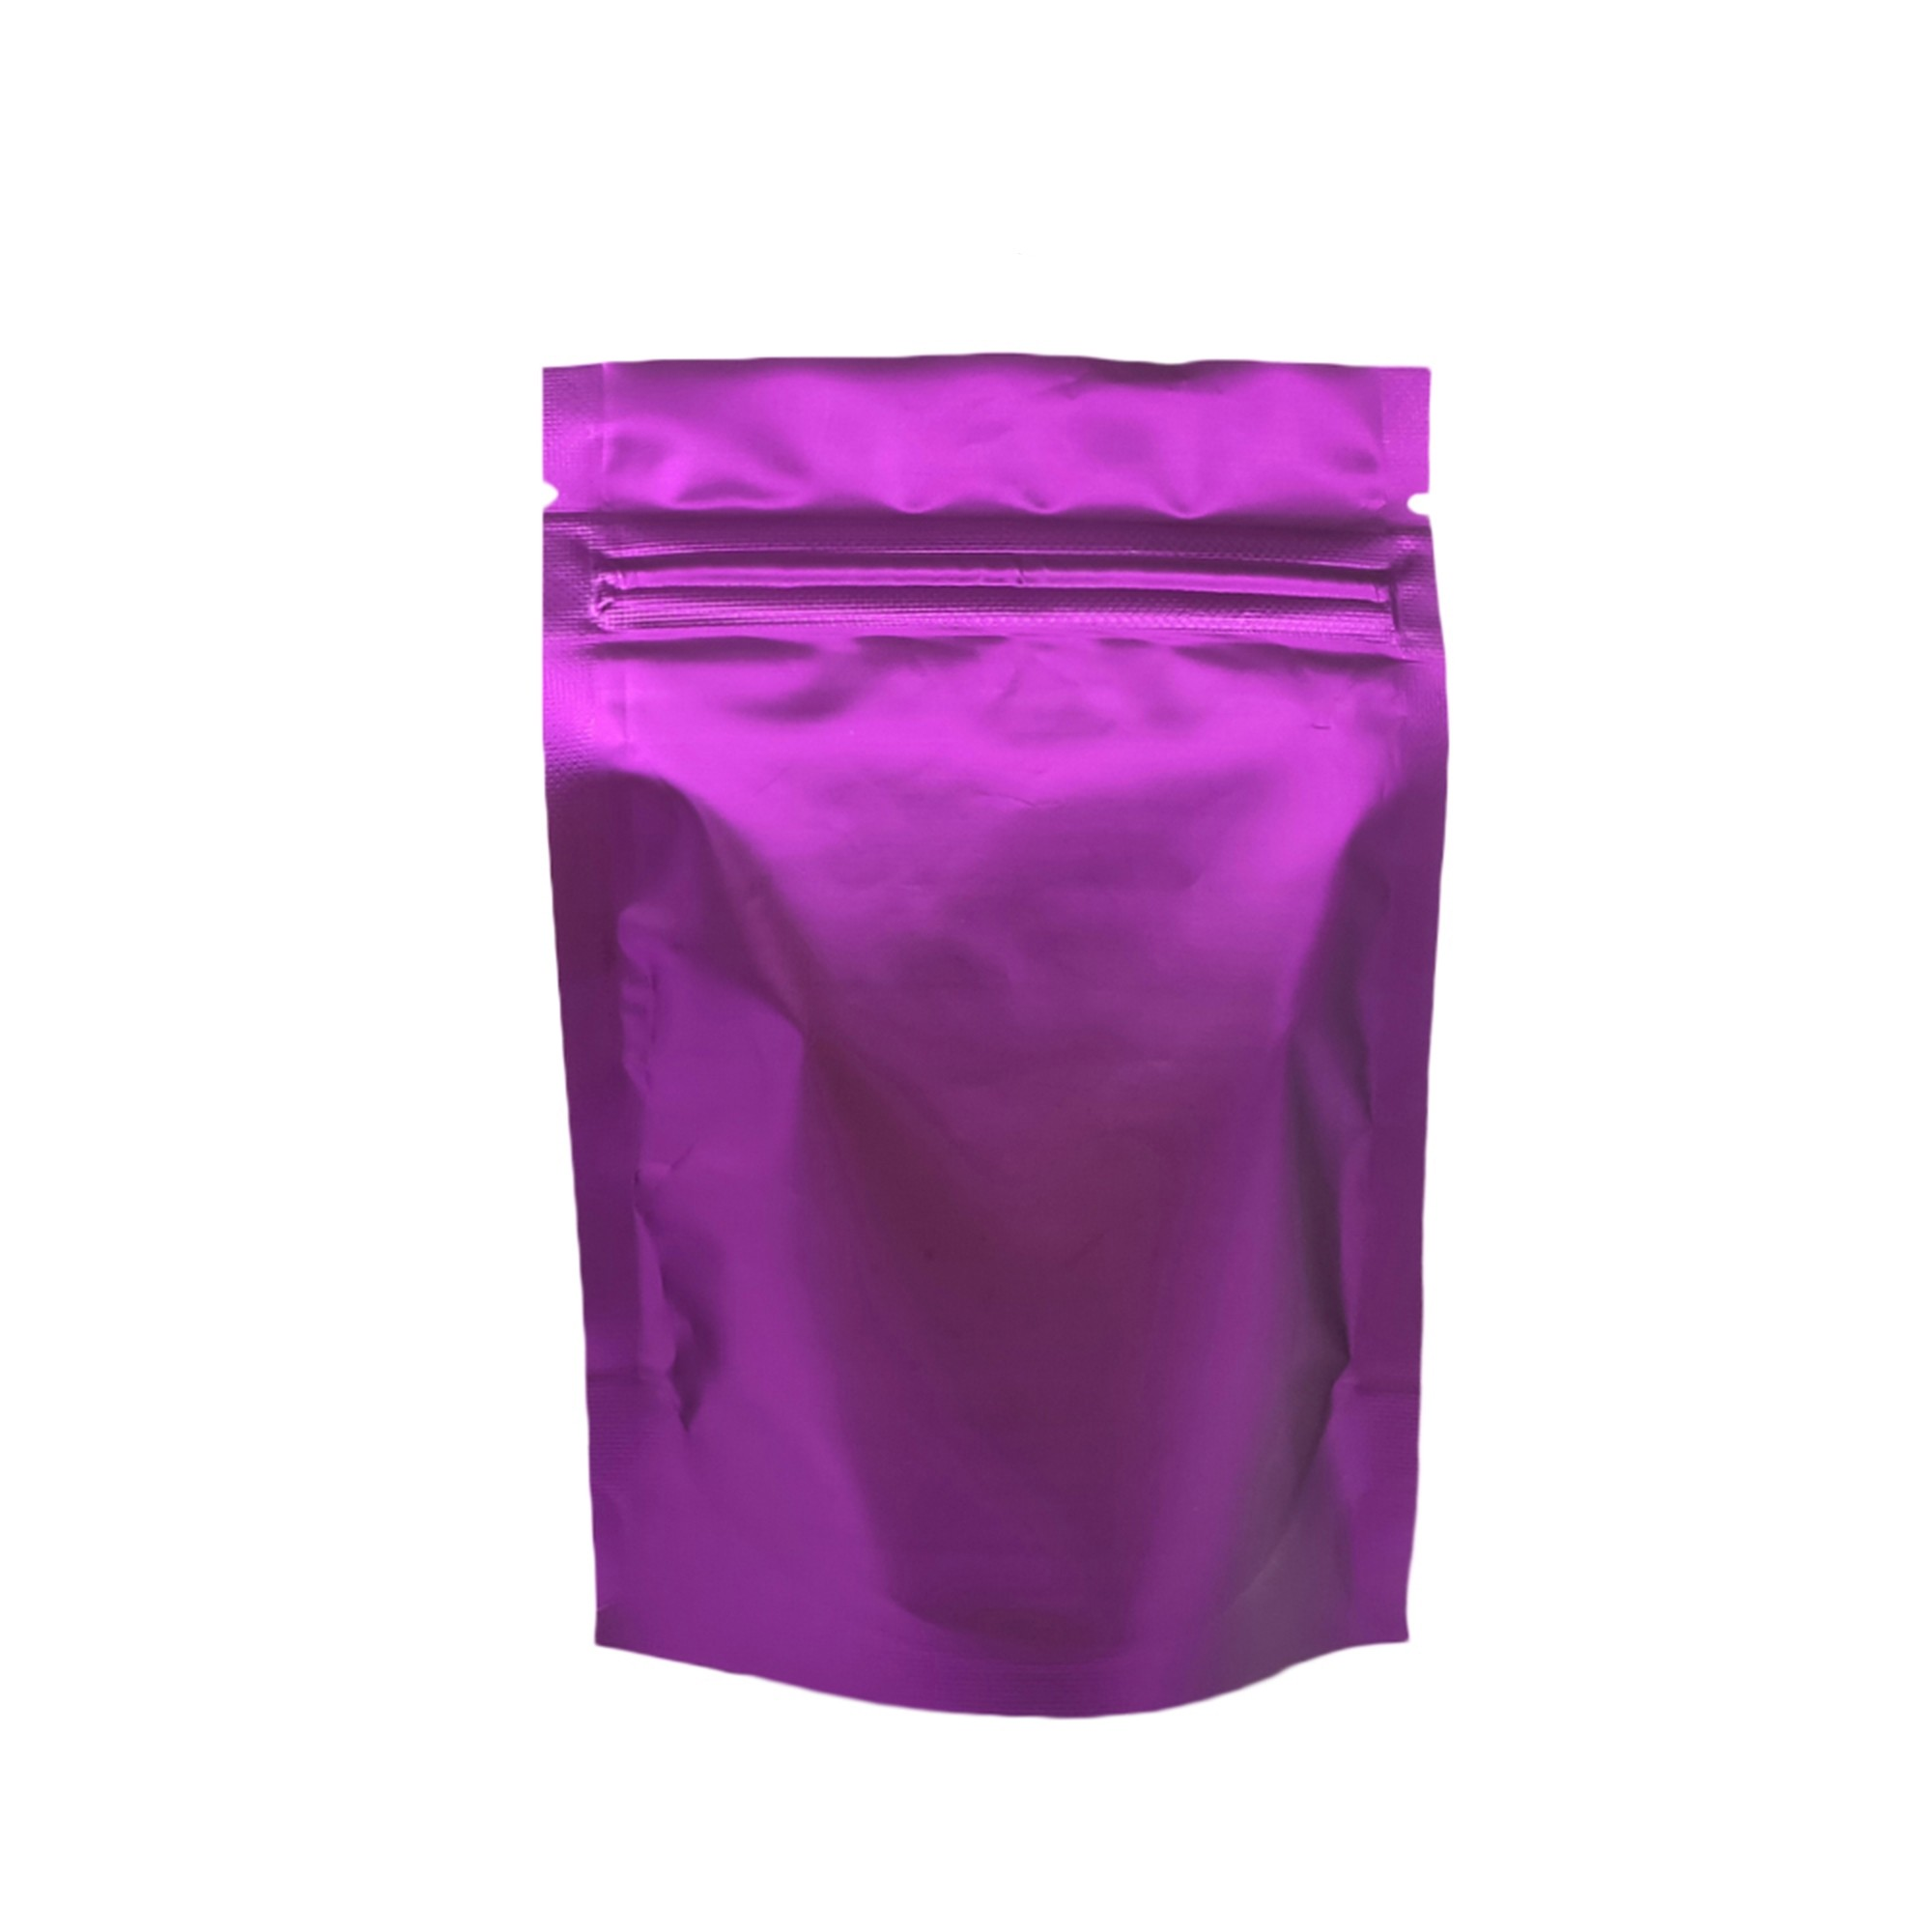 Matte Double-Sided Purple Metallic Foil Standup Ziplock Bags 8.5 cm x 13 cm [3.3 inches x 5.1 inches] (500 Bags/Lot)